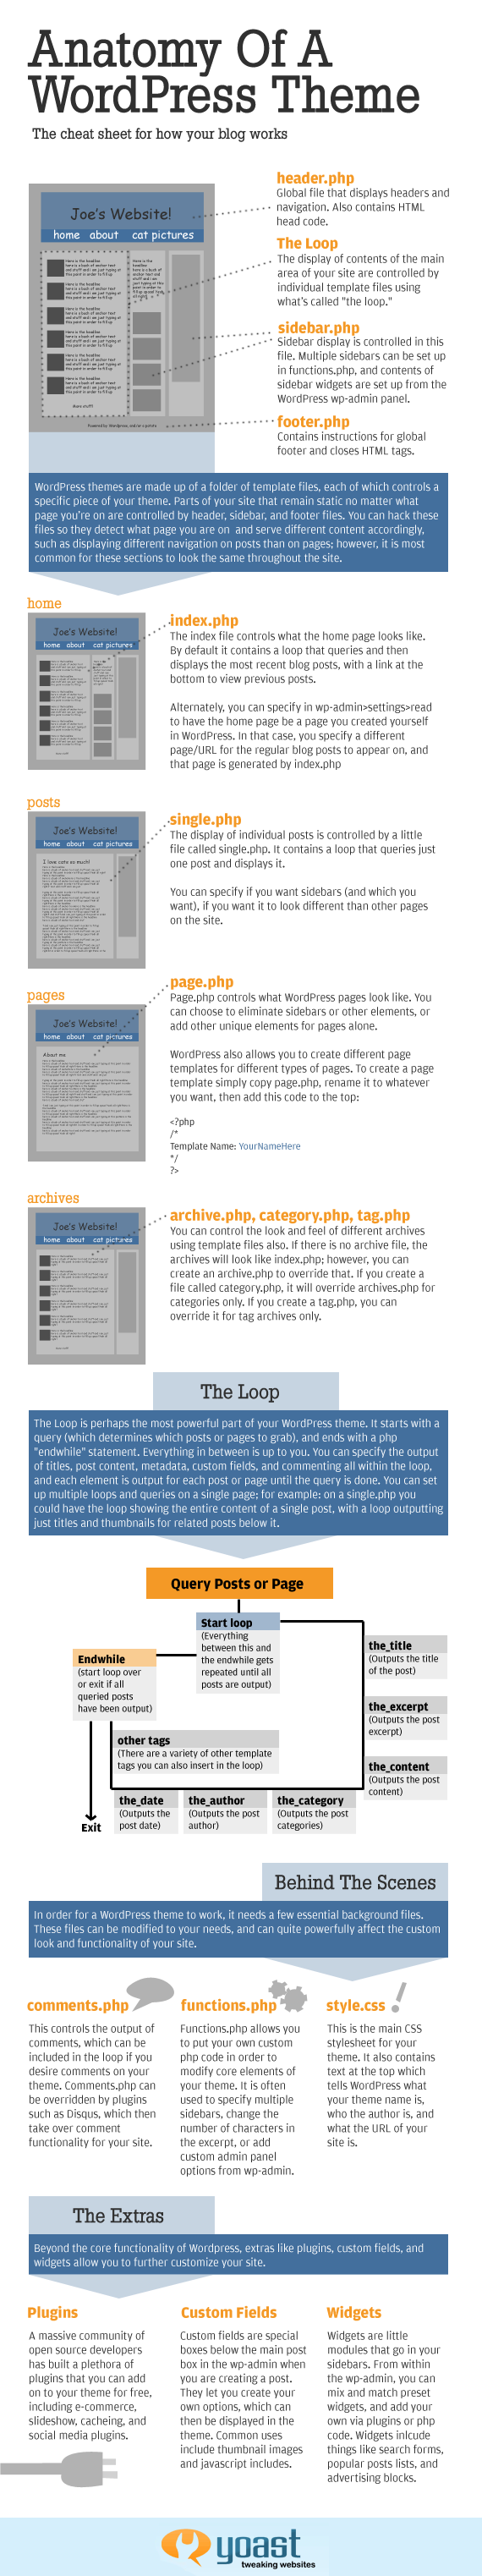 Wordpress Theme Breakdown-infographic